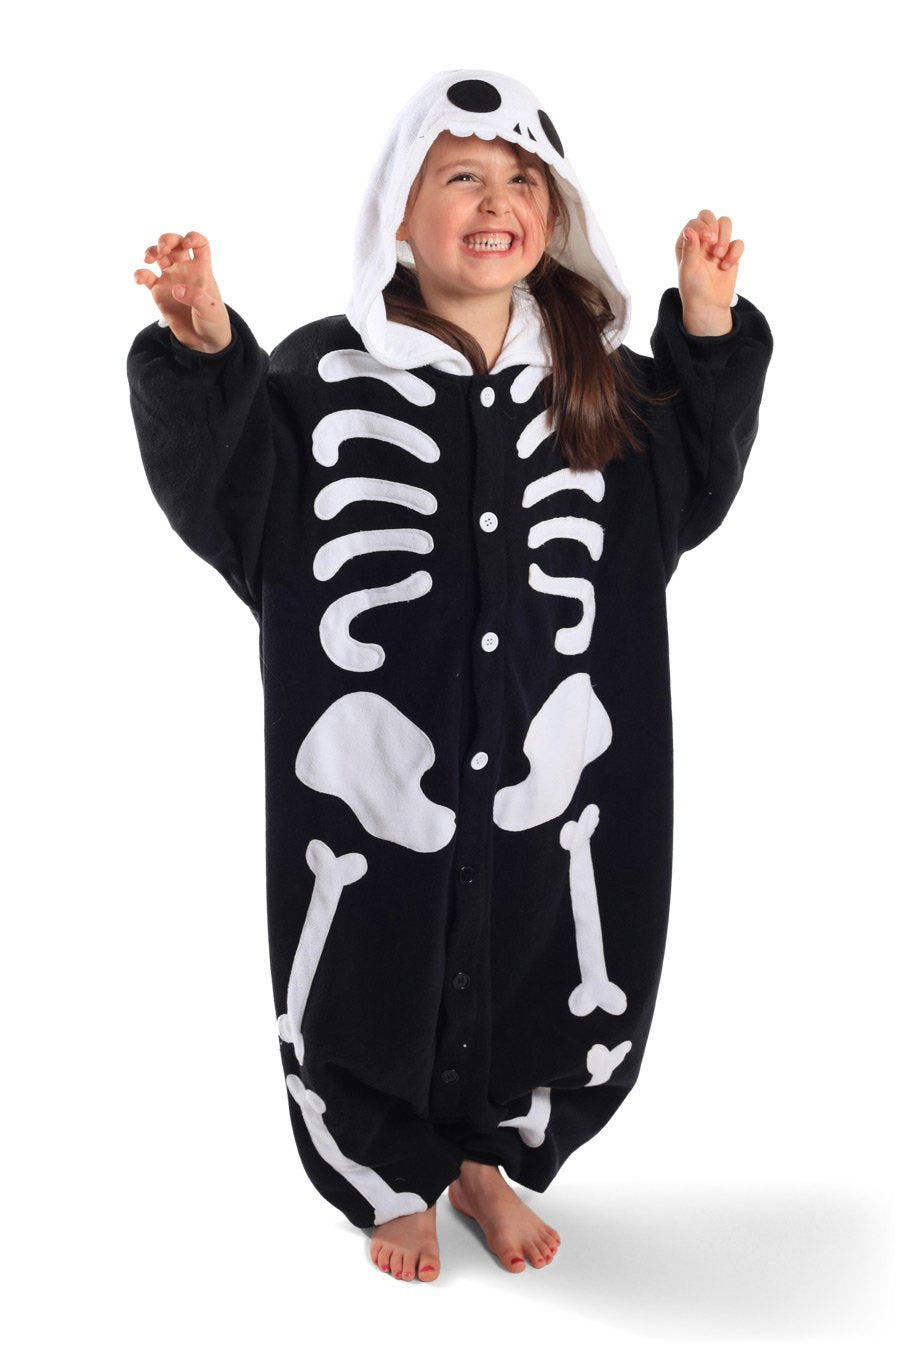 Onesie World Unisex Animal Pyjamas - Skeleton Baby (Cosplay / Nightwear Halloween Carnival Novelty